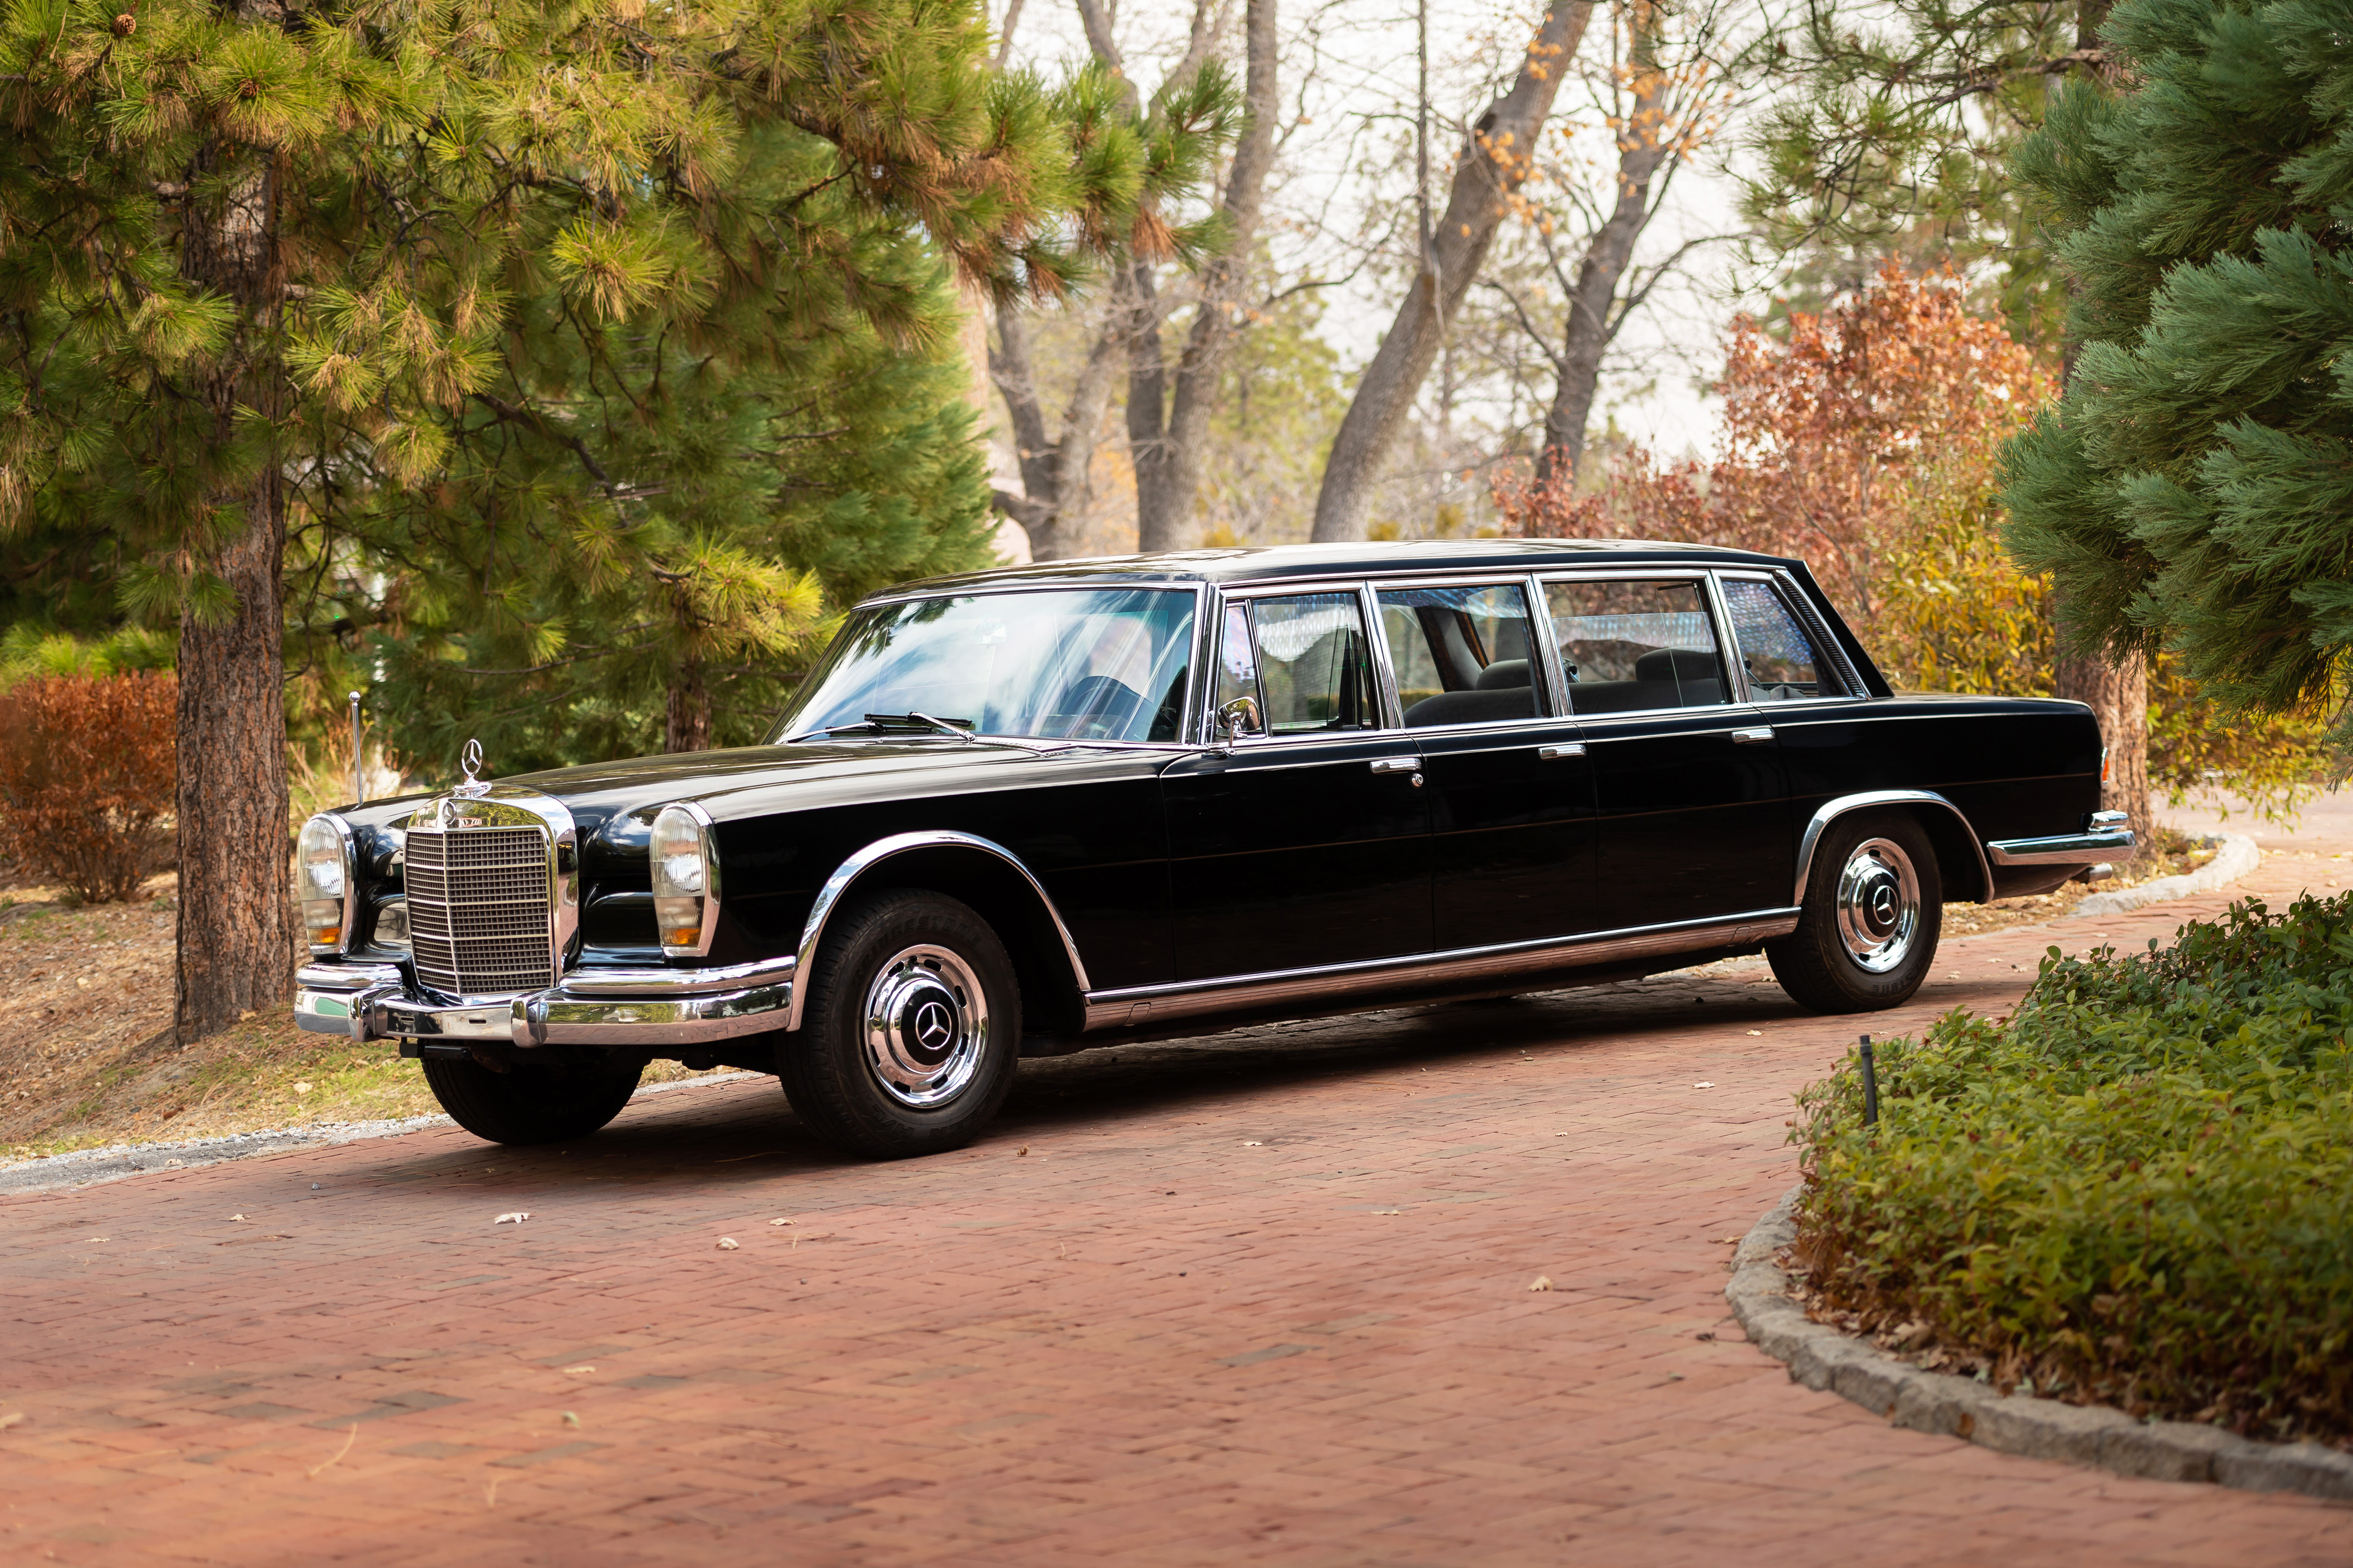 Why do we love limousines? A short history of long cars